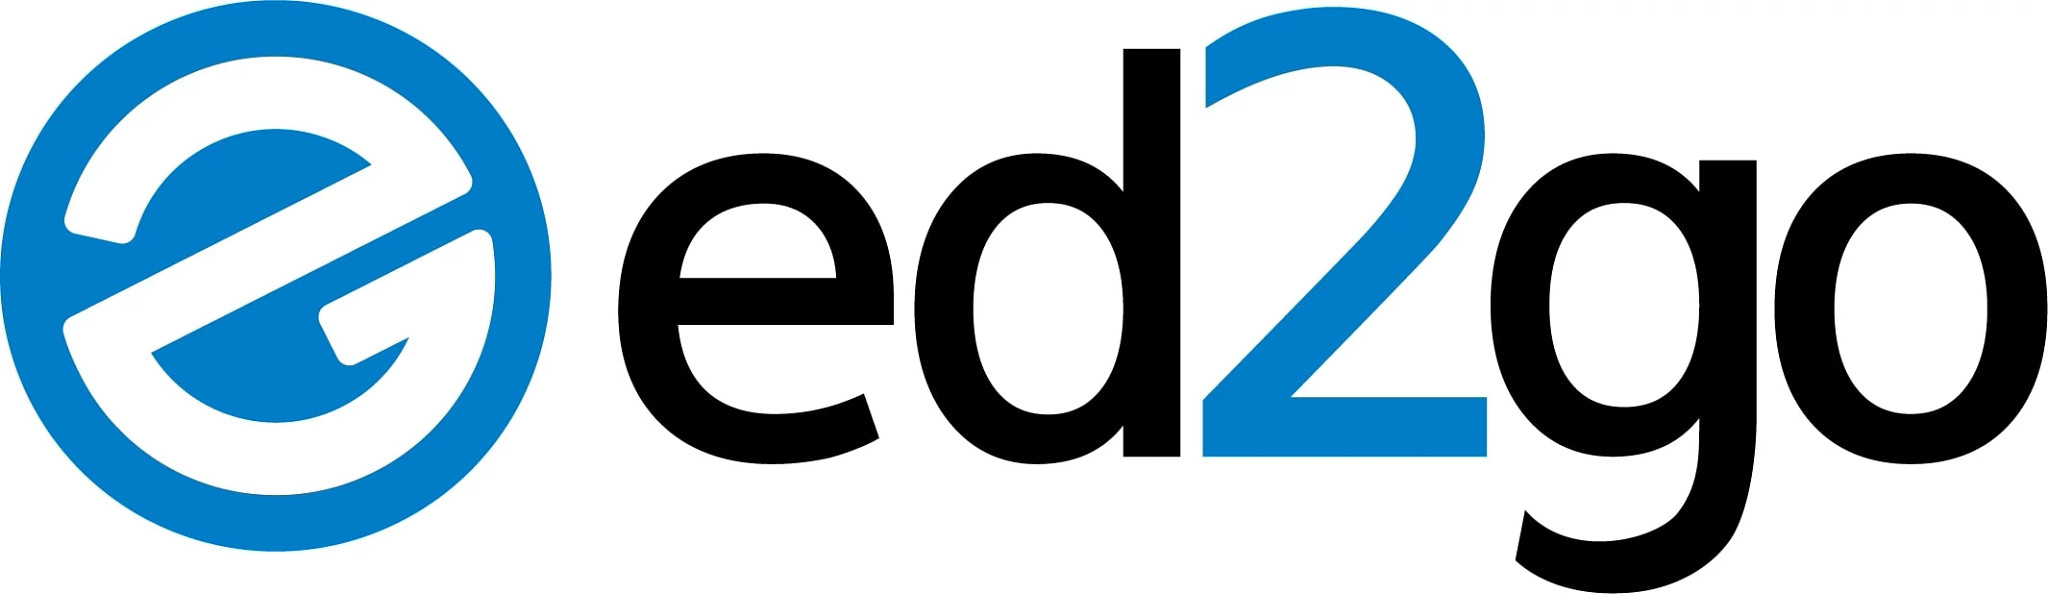 ed2go logo with black and blue and a circle around the E, representing Cengage's workforce skills brand